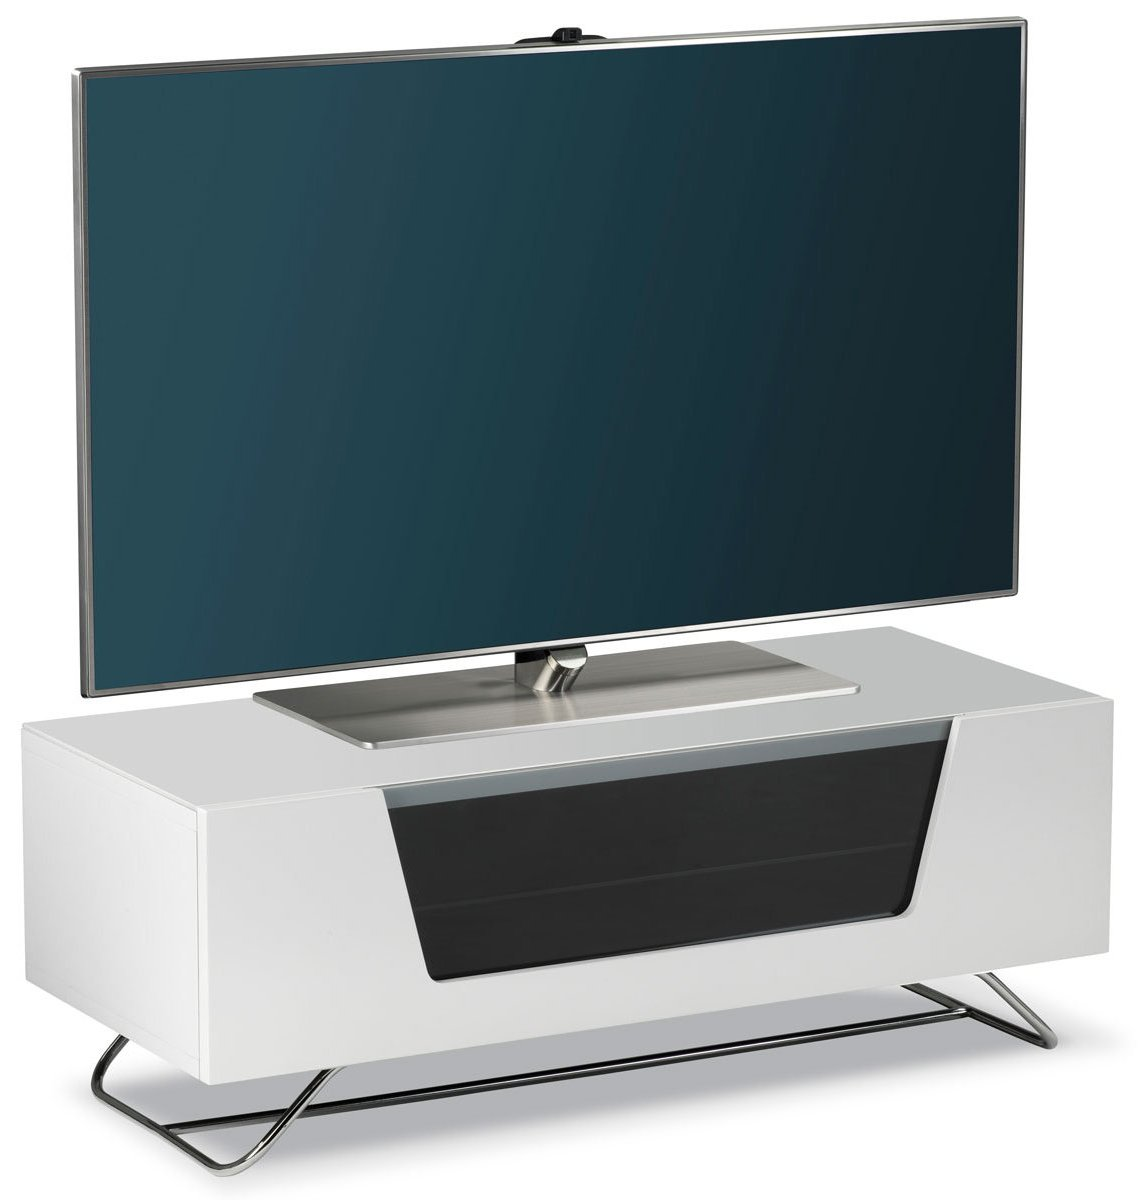 Alphason The Plasma Centre # Meuble Tv Alphason